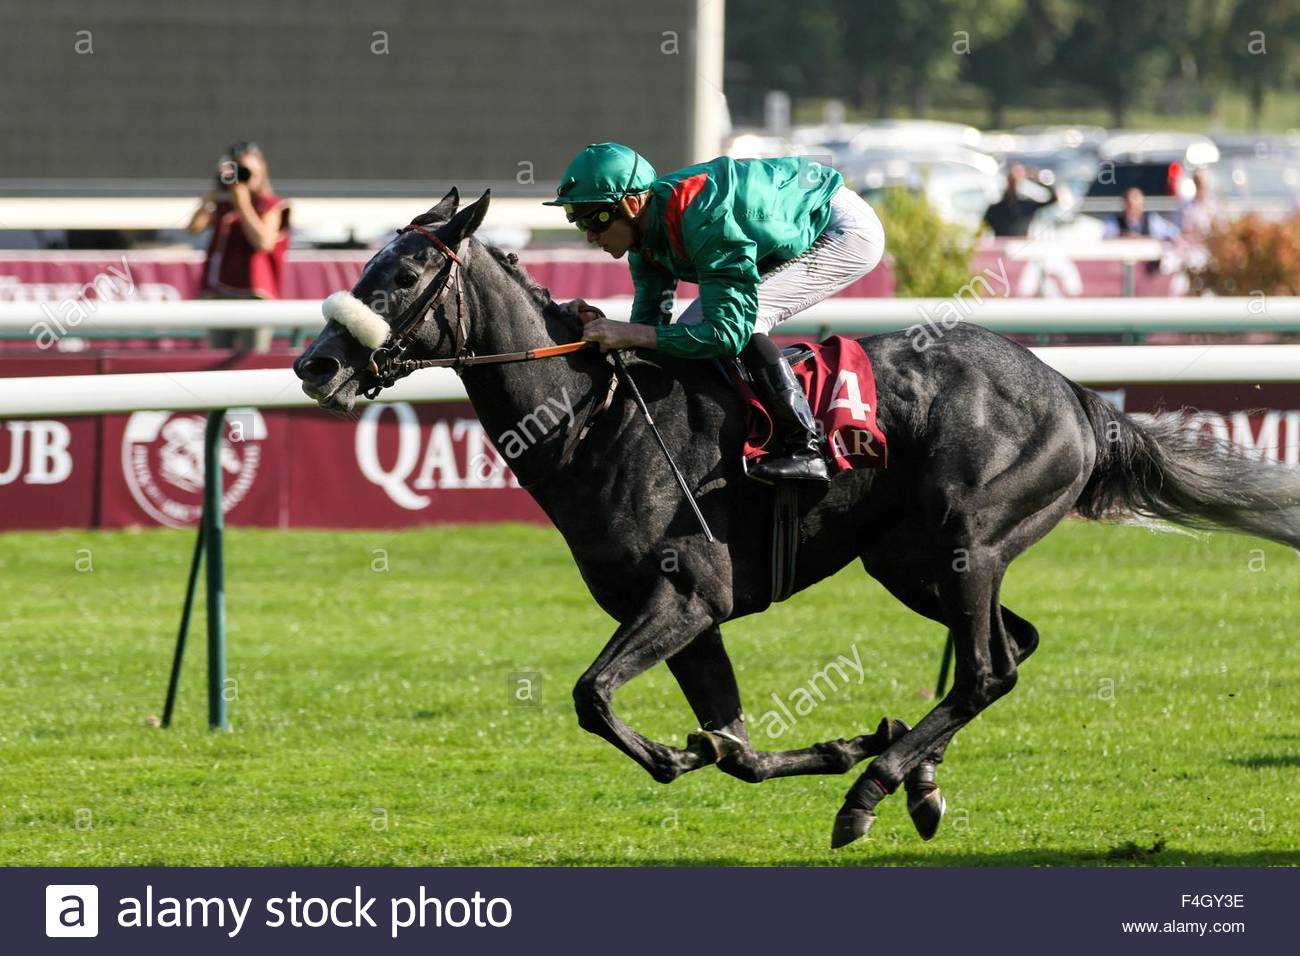 Paris, France. October 3rd, 2015. FRANCE, Paris: A jockey gets on a horse during 94th Prix de l'Arc de Triomphe Stock Photo